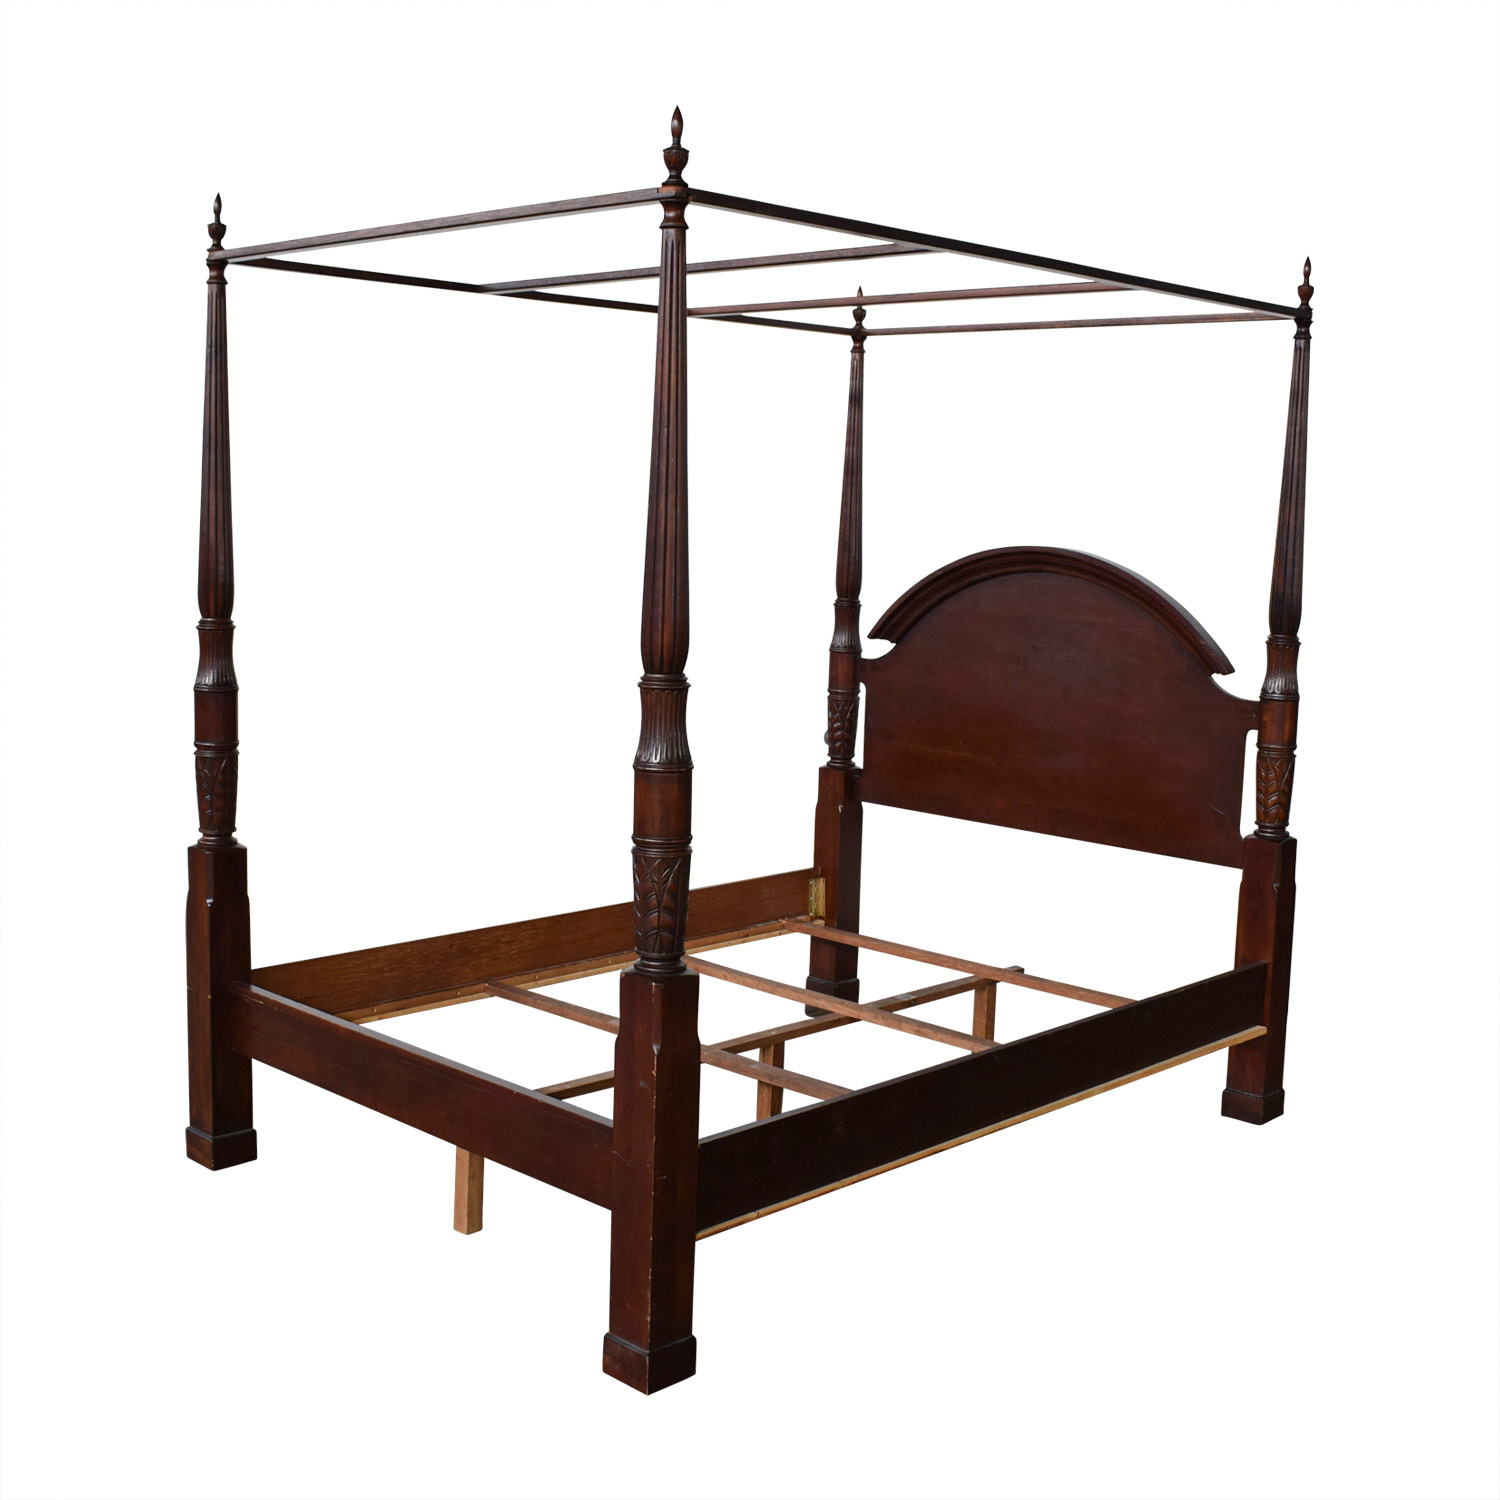 83 Off Wood Four Poster Canopy Bed Frame Beds